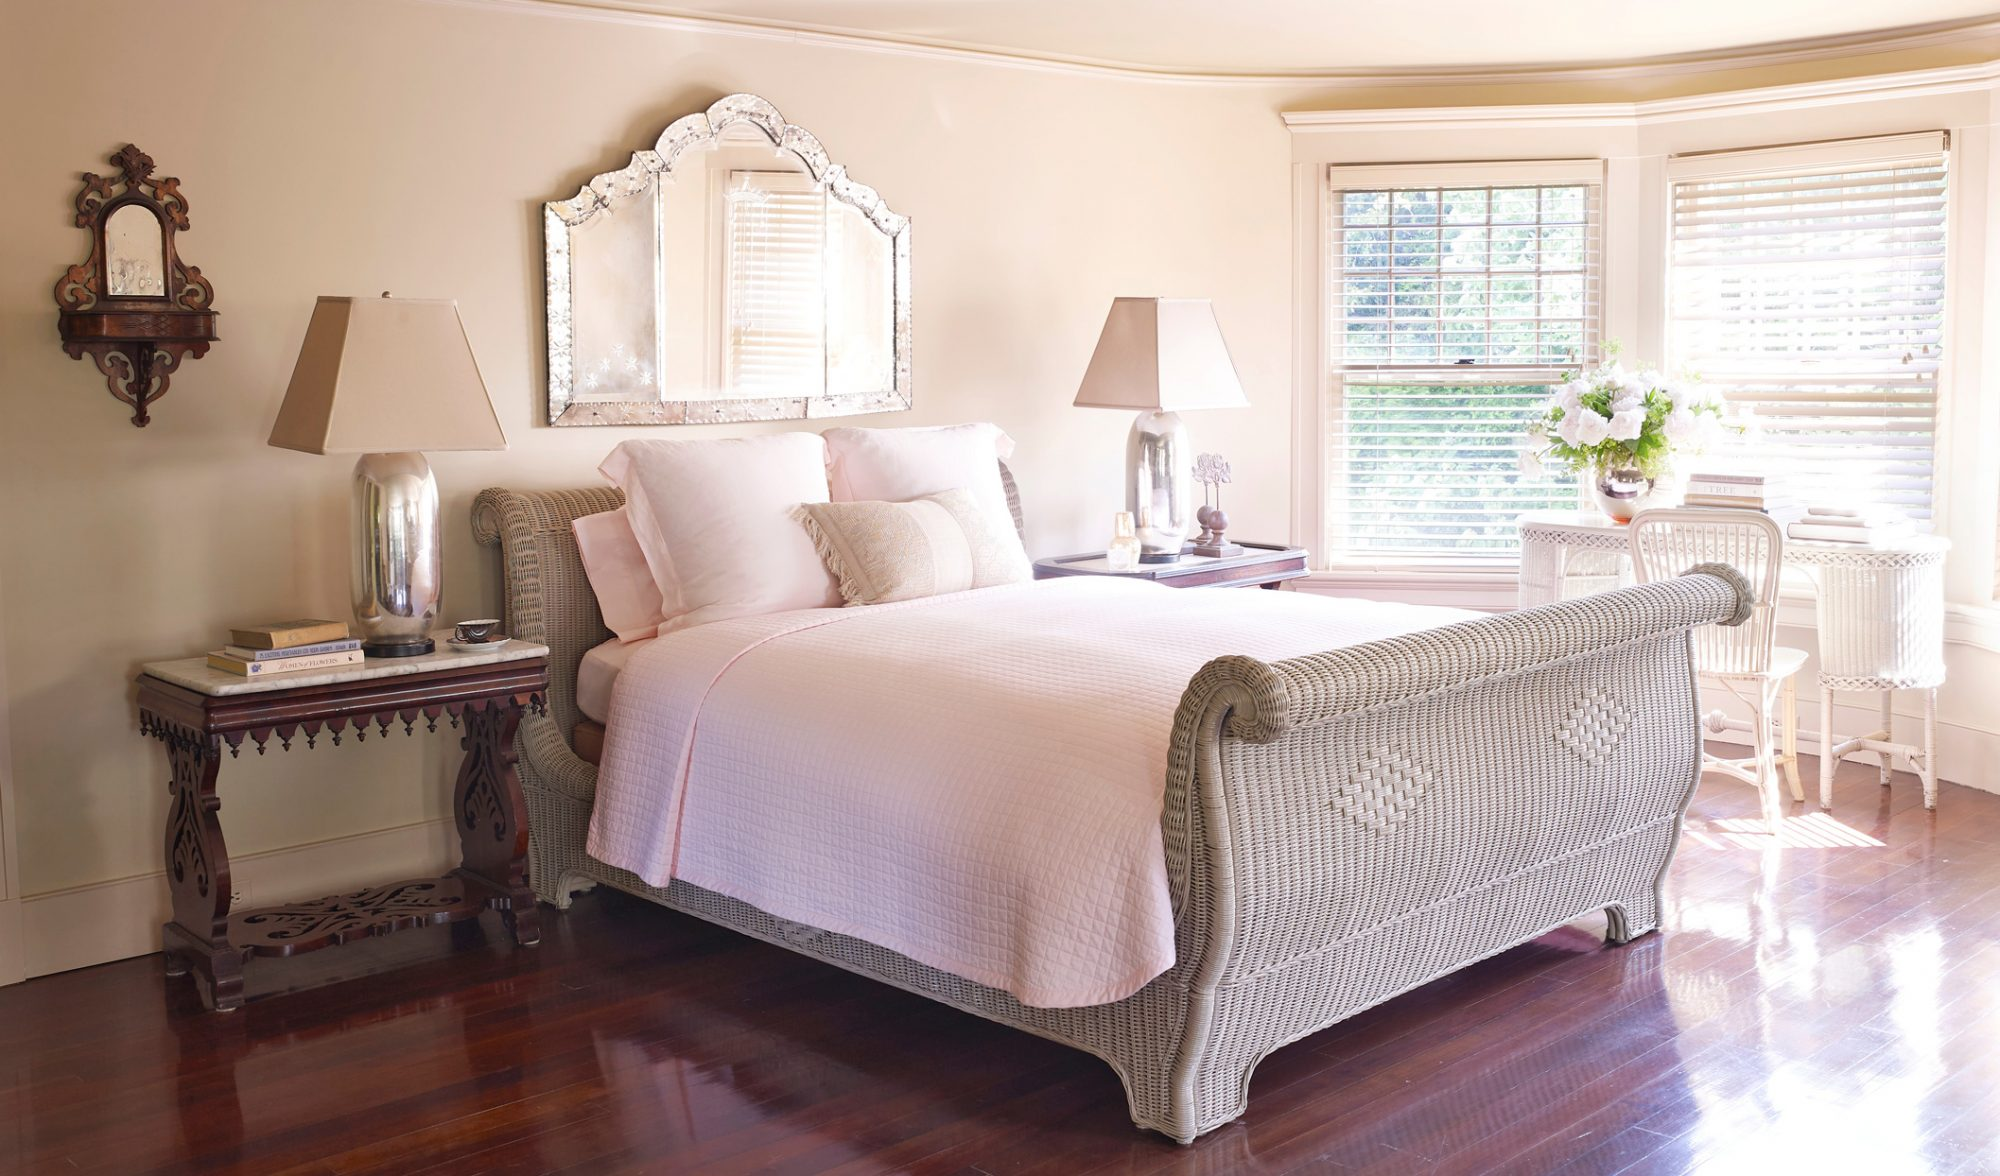 bedroom with wicker bed and writing desk